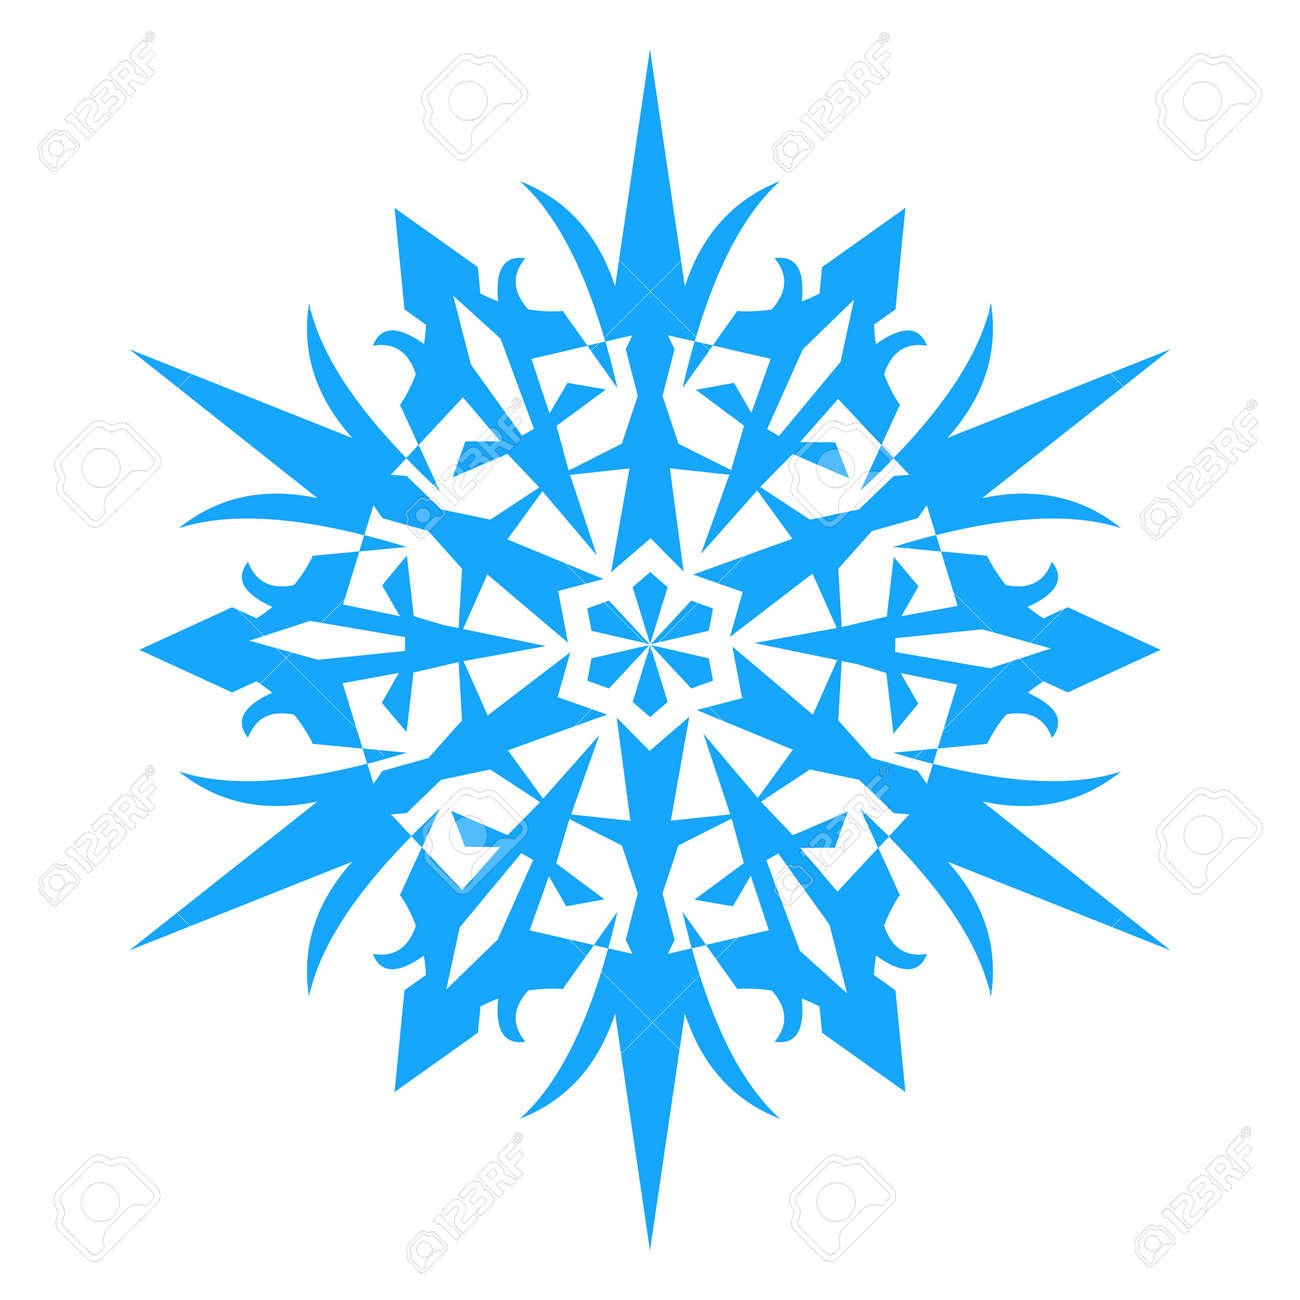 snowflake icon vector illlustration isolated on white background rh 123rf com free snowflake vector commercial use free snowflake vector icon